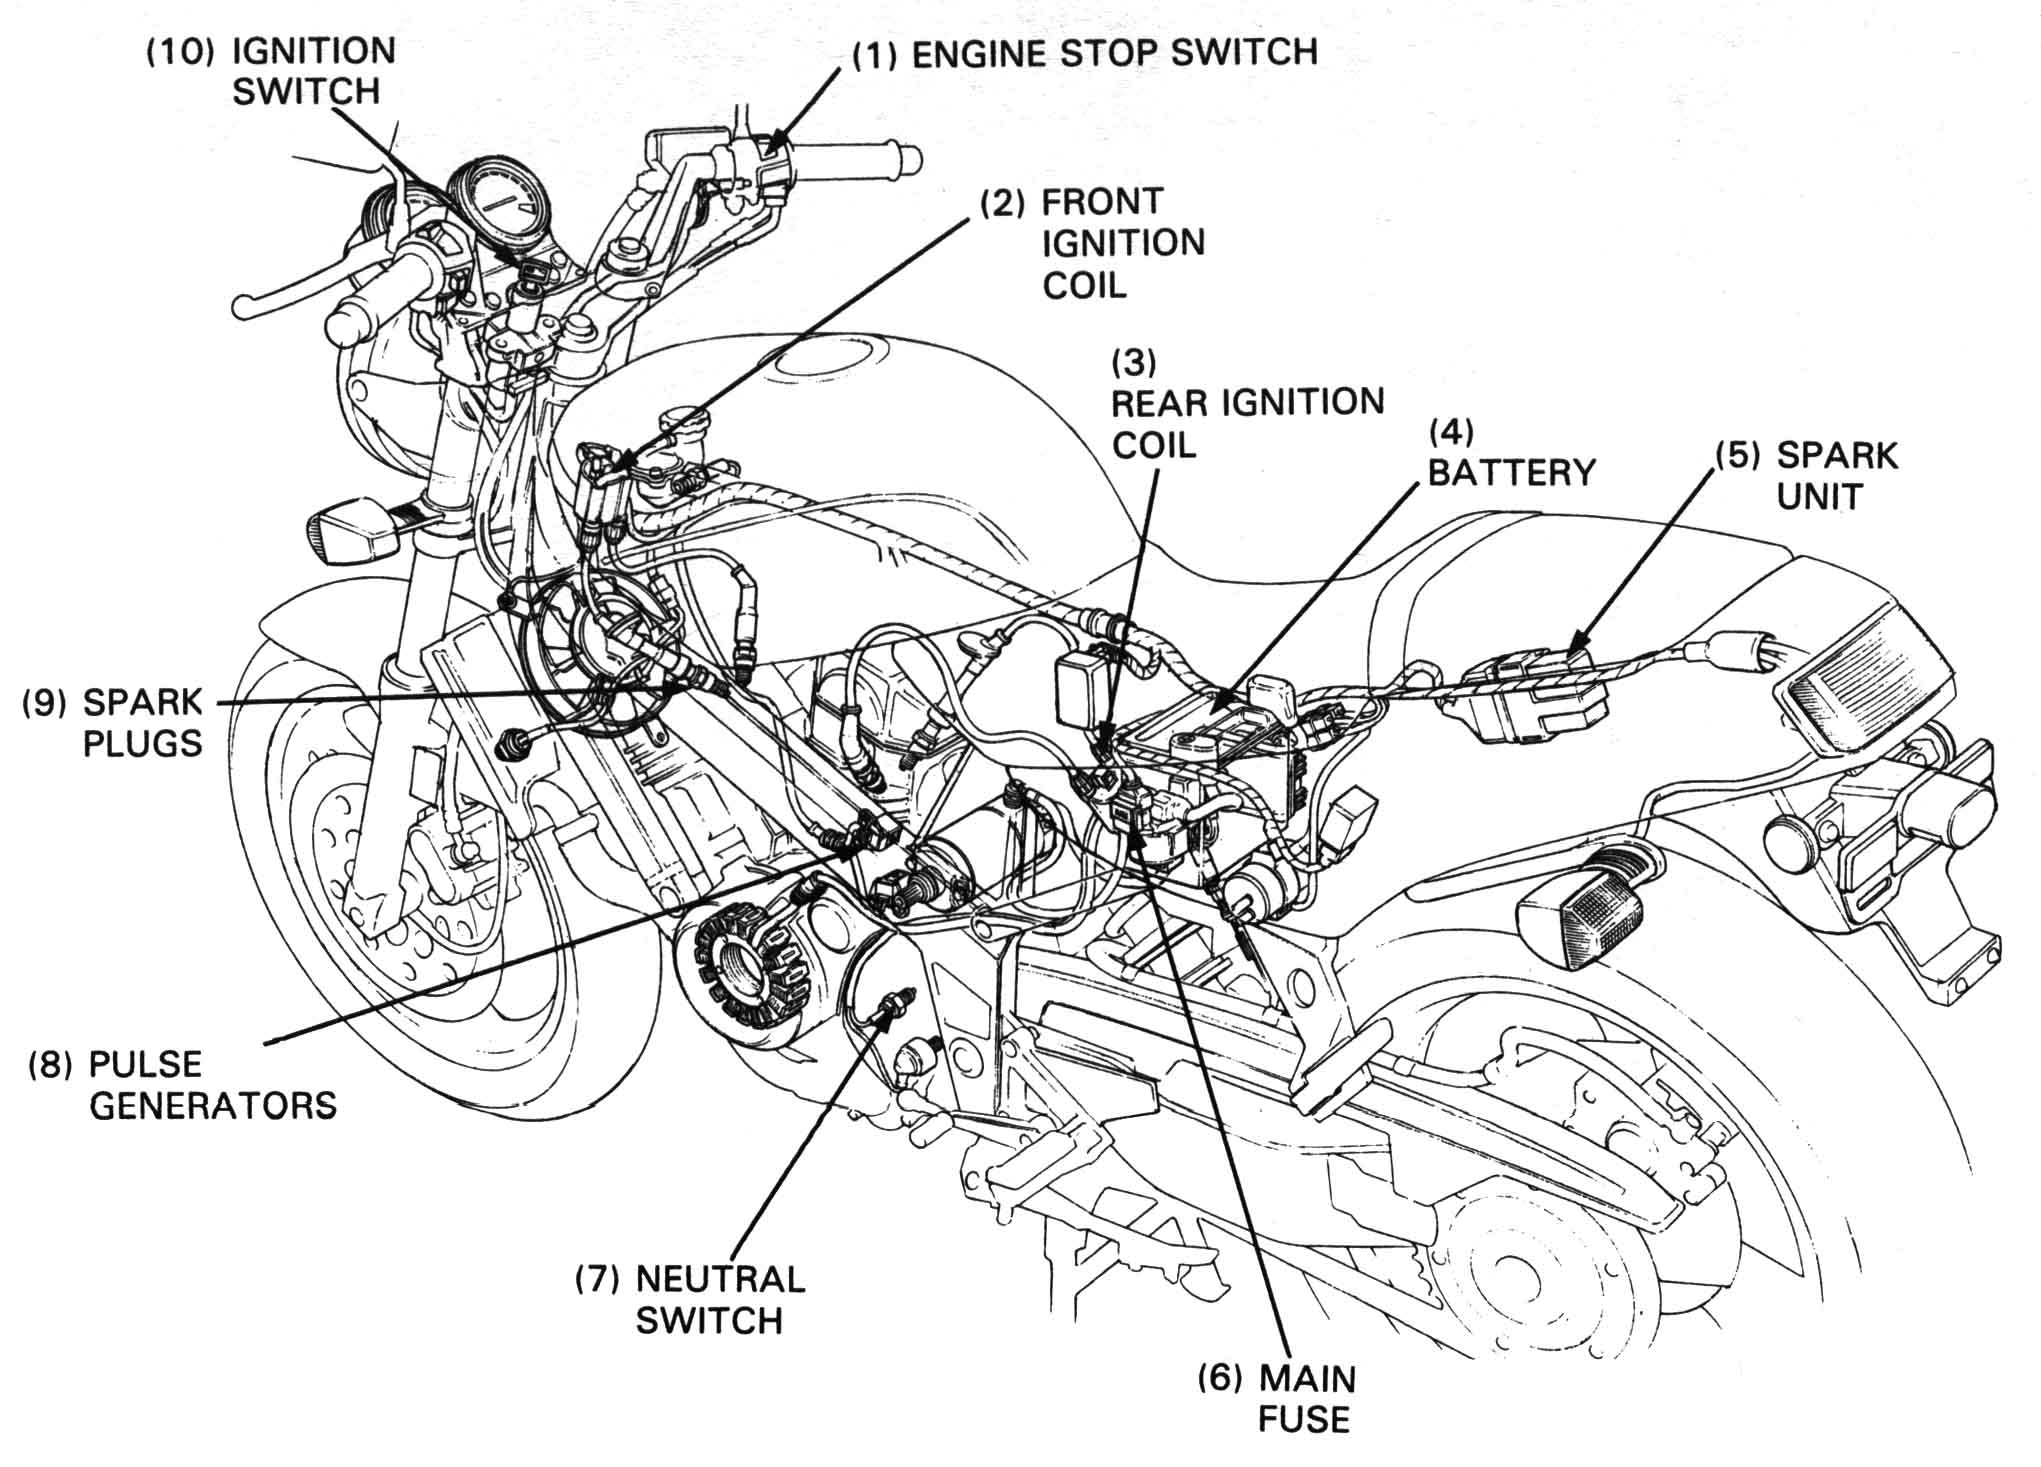 Iplimage together with Img as well Honda Crf F Service Manual Page as well Maxresdefault furthermore Maxresdefault. on motorcycle exhaust system diagram